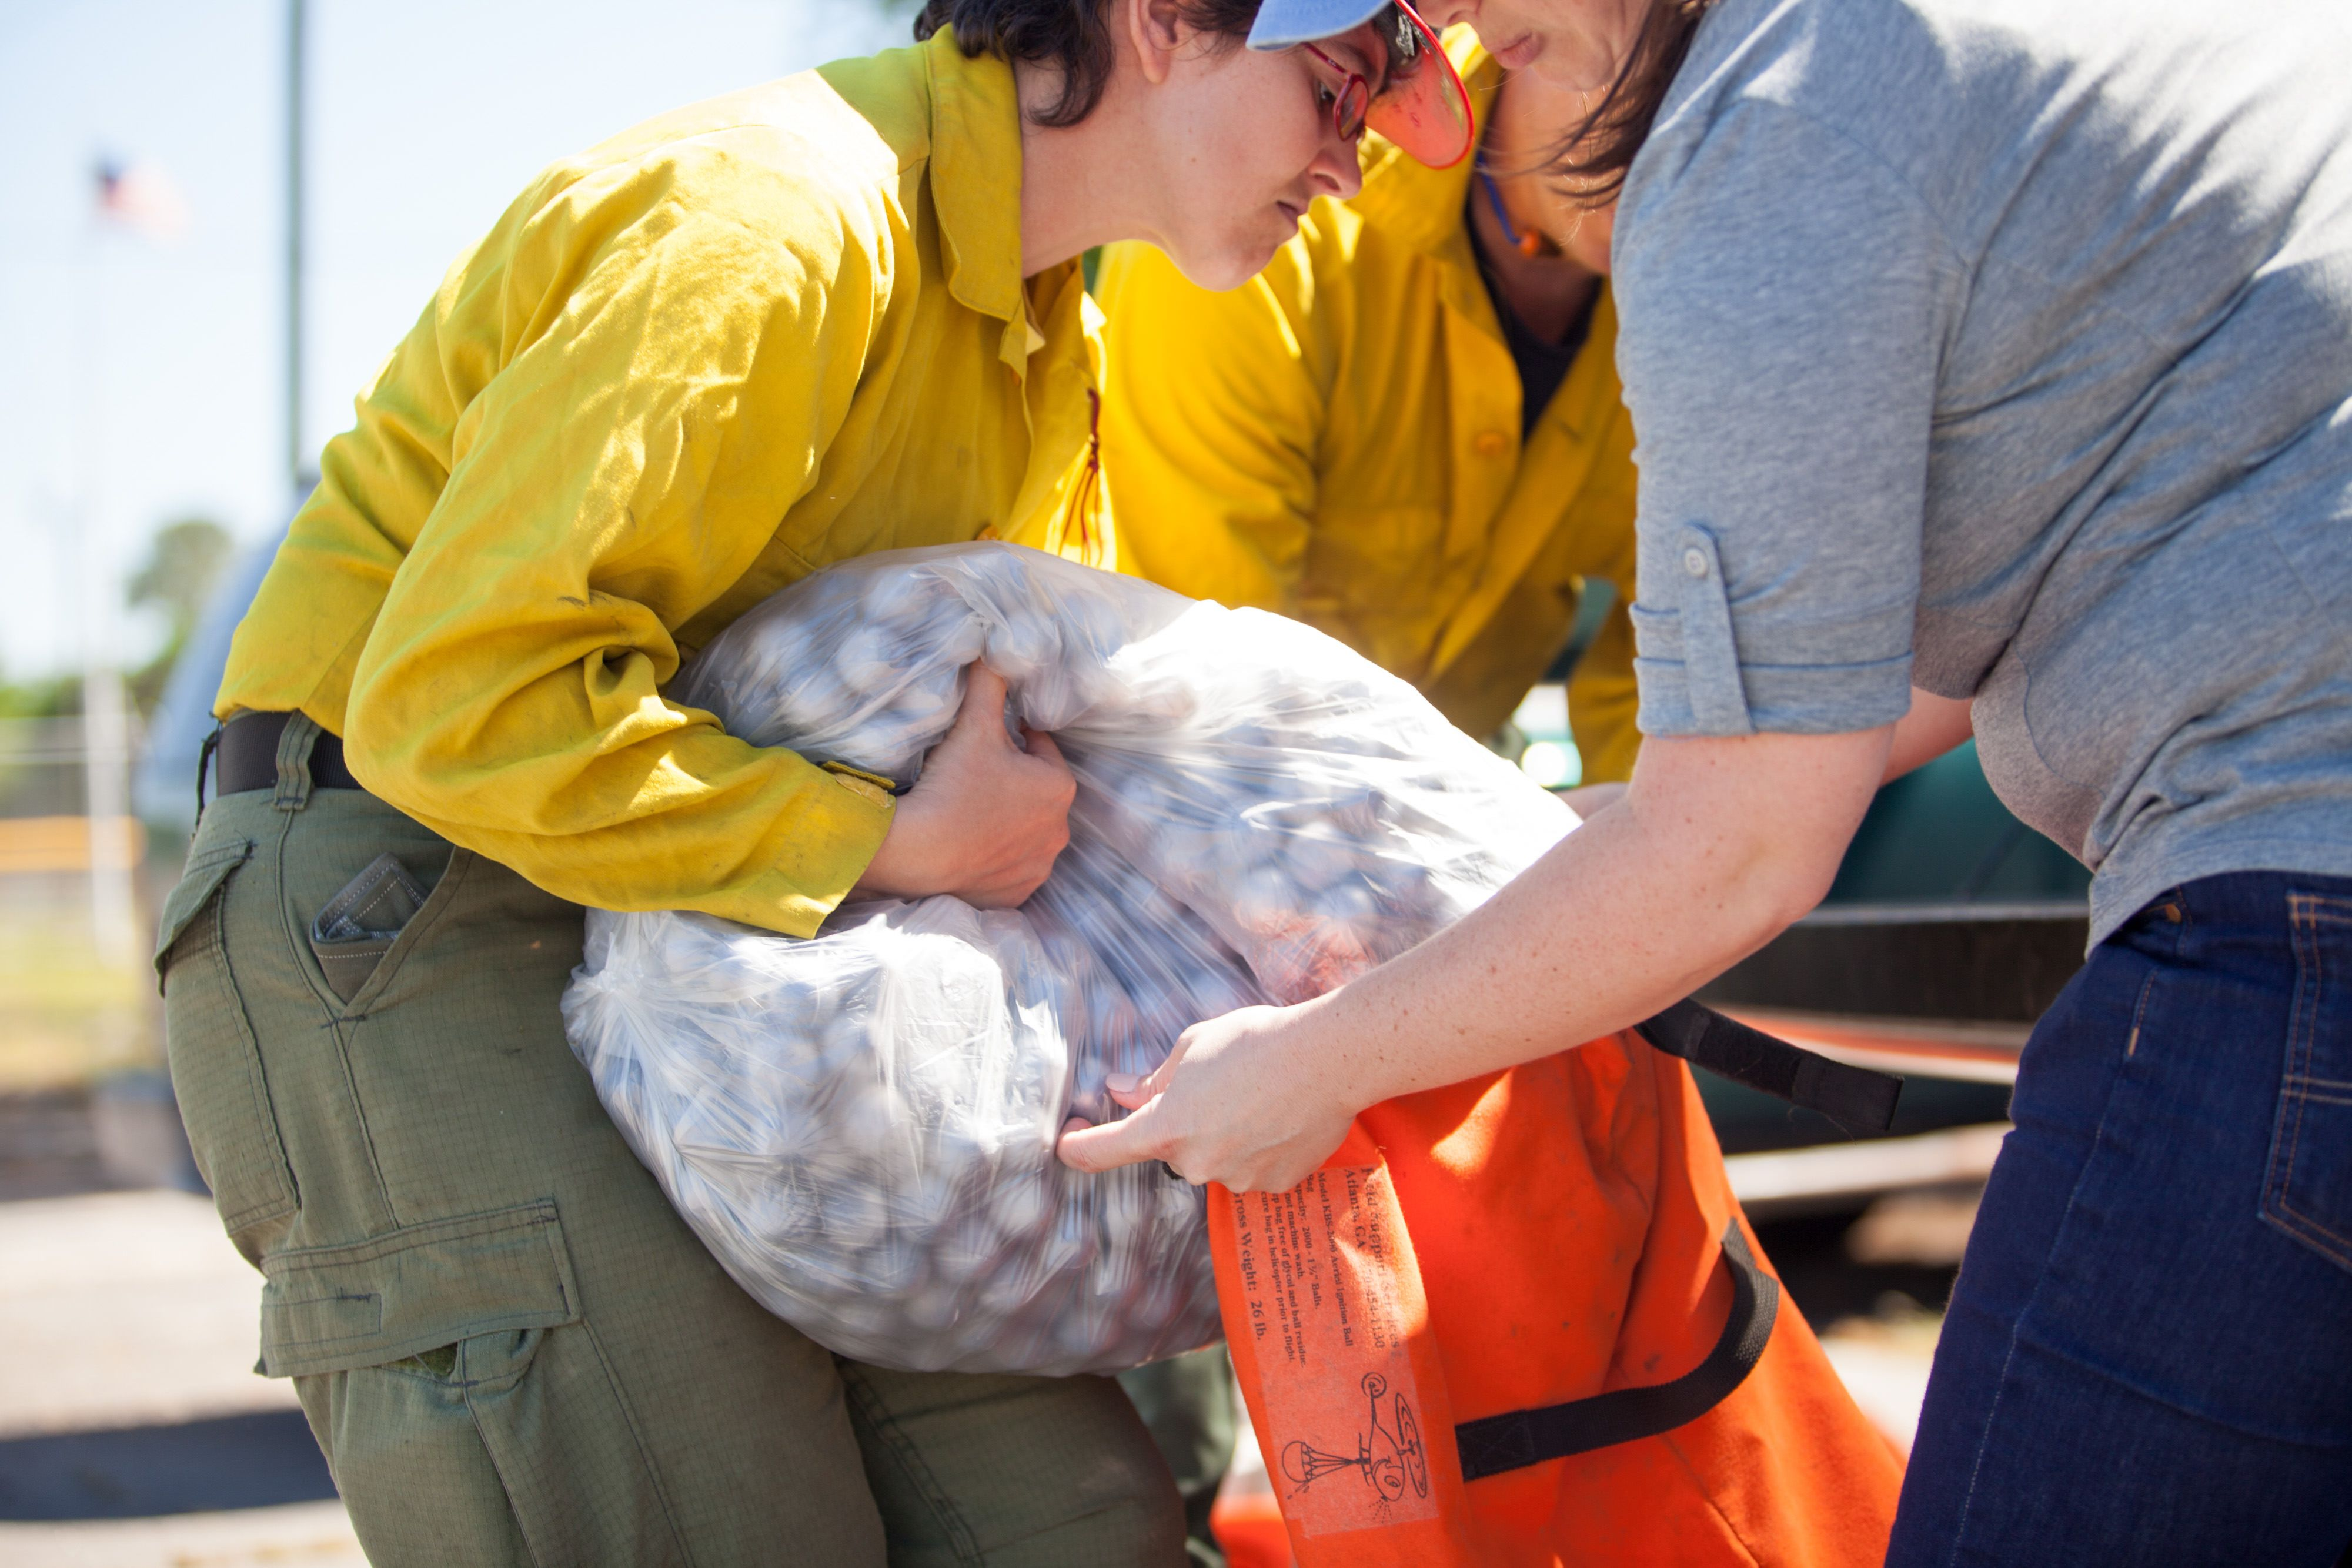 Three people huddle around an orange sack. One person holds the sack open while a second empties a clear plastic bag full of gray spheres into the sack.